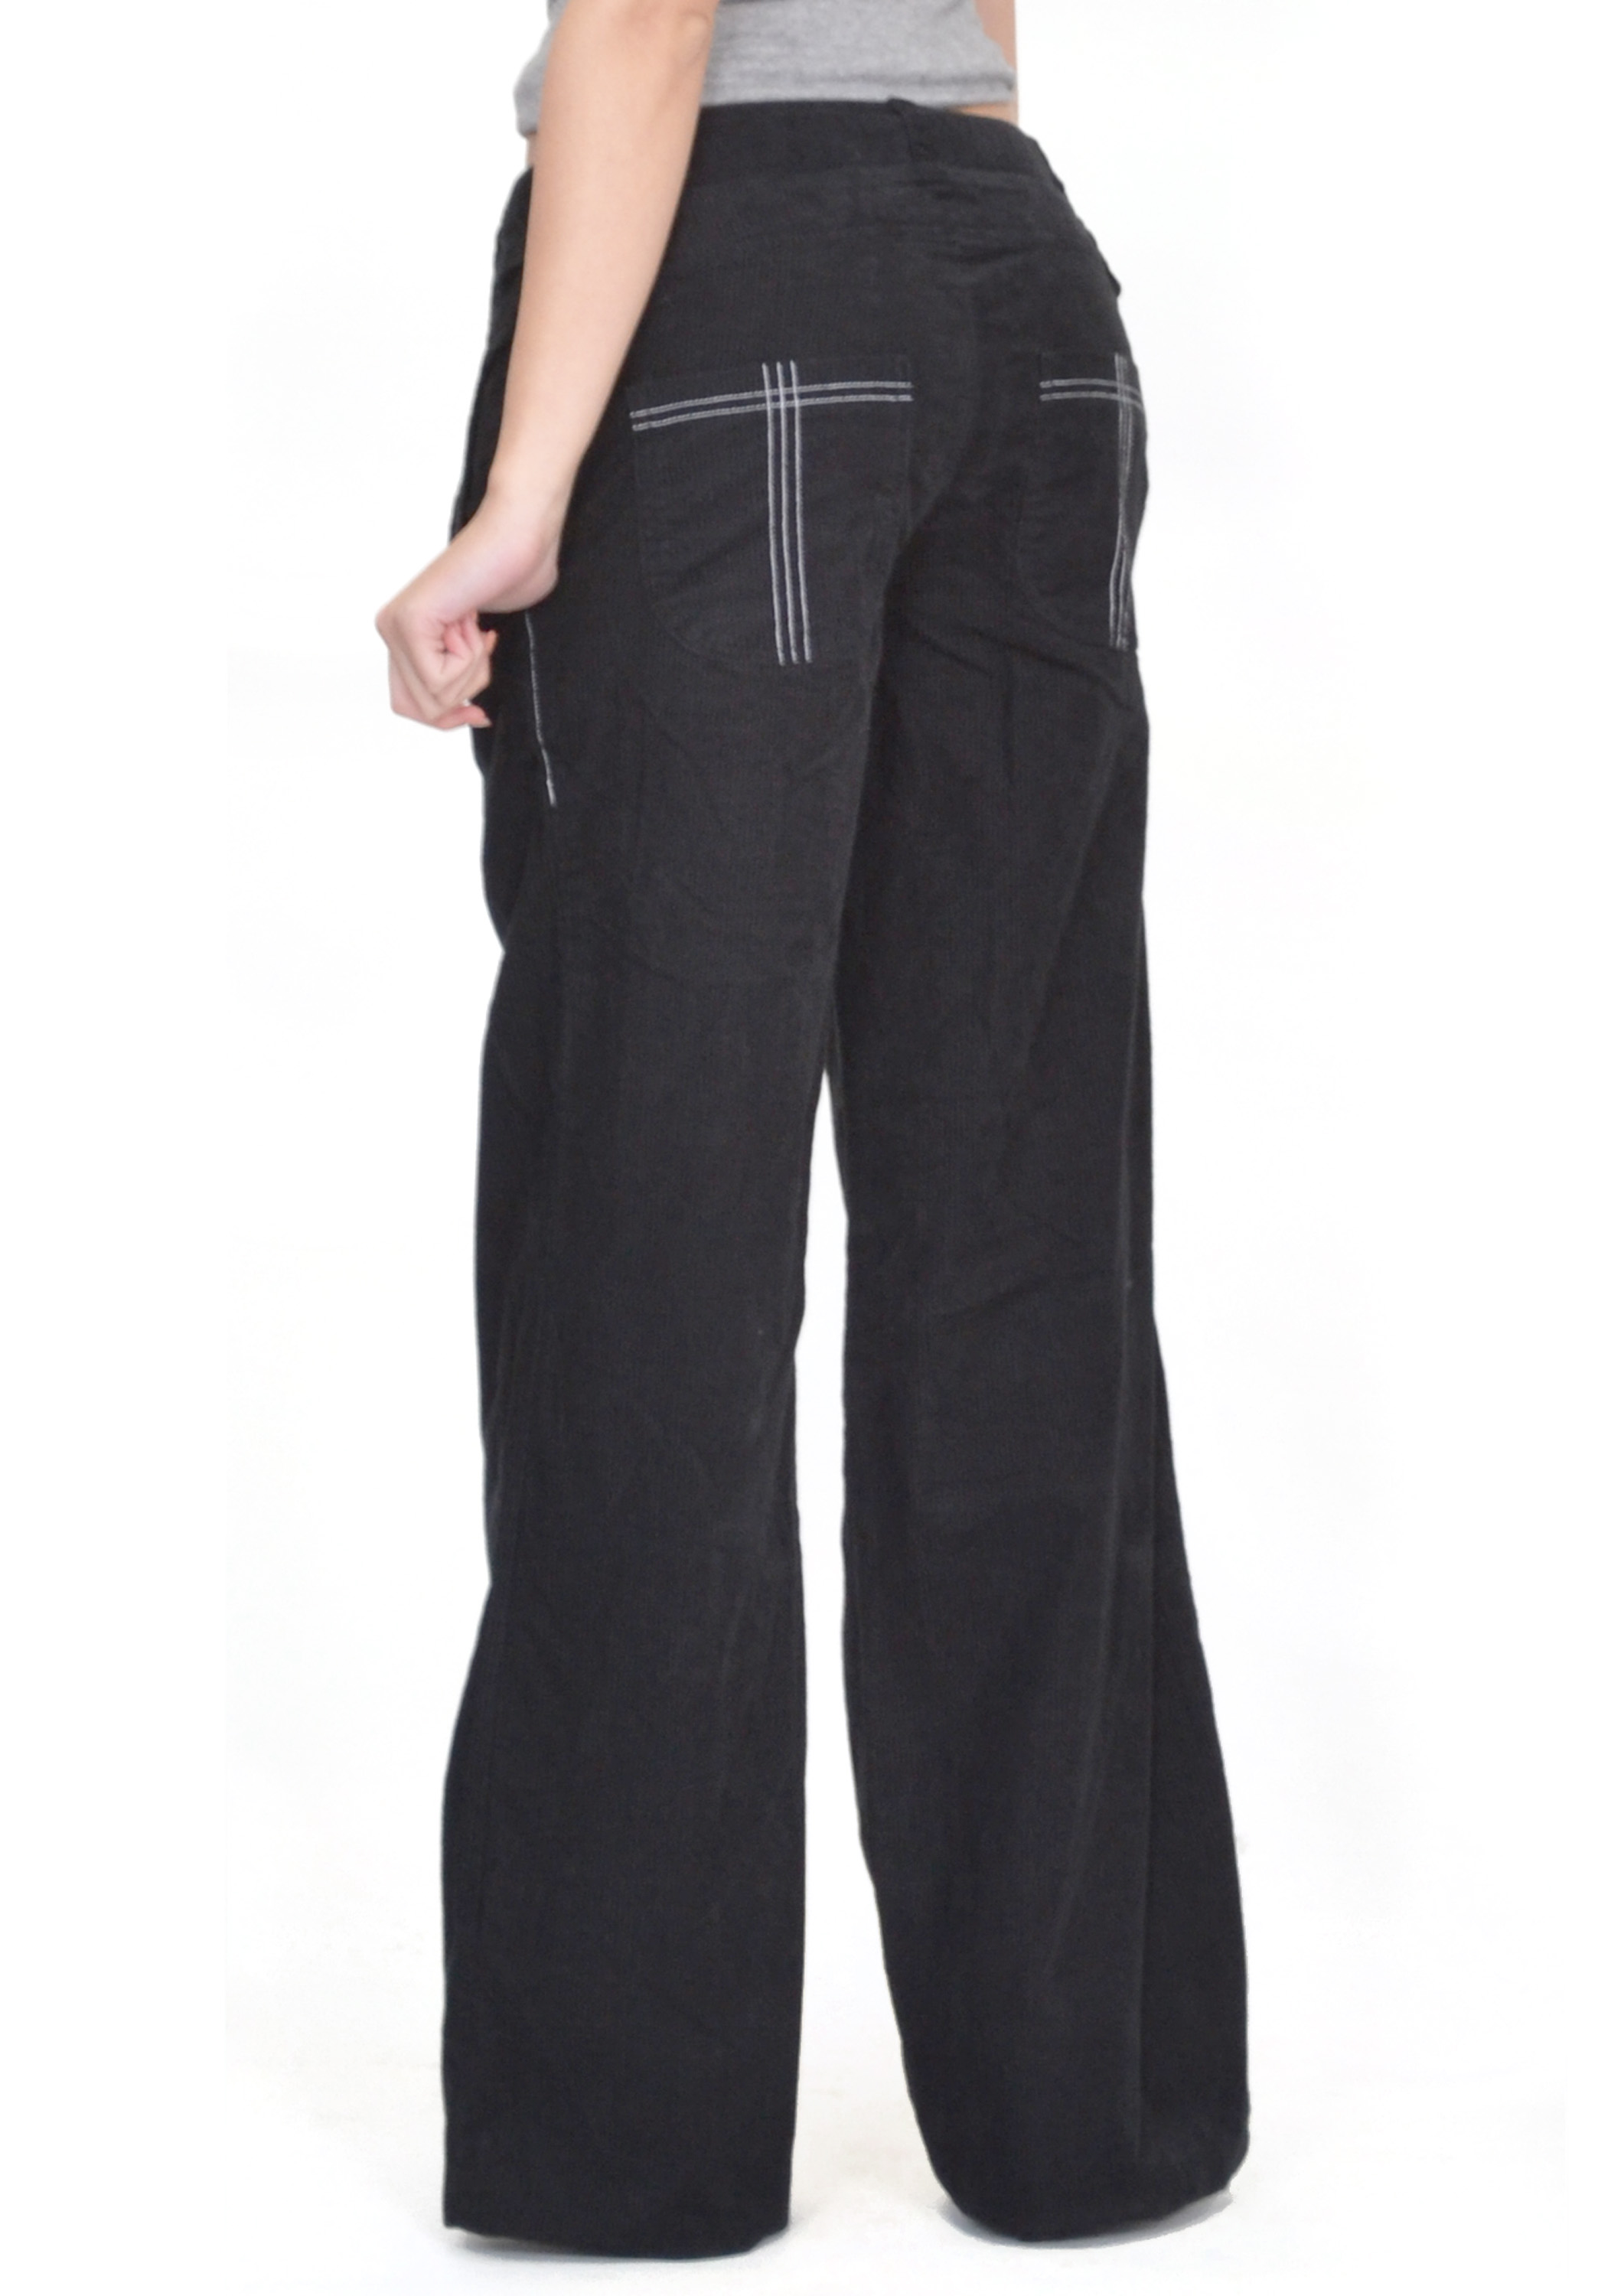 Find great deals on eBay for baggy corduroy pants. Shop with confidence.